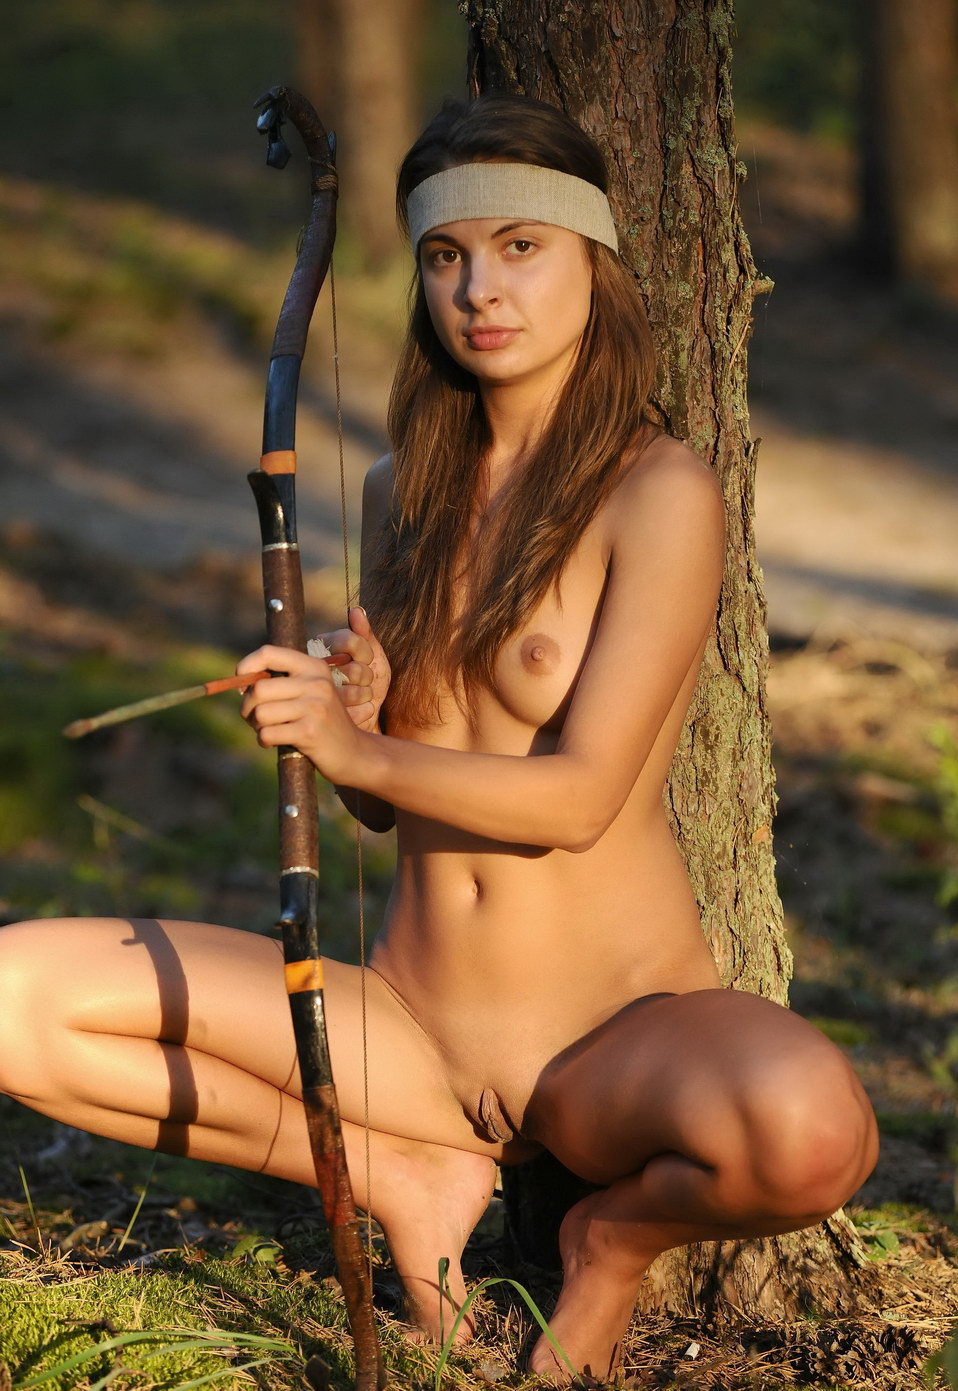 nudist camp naked girls